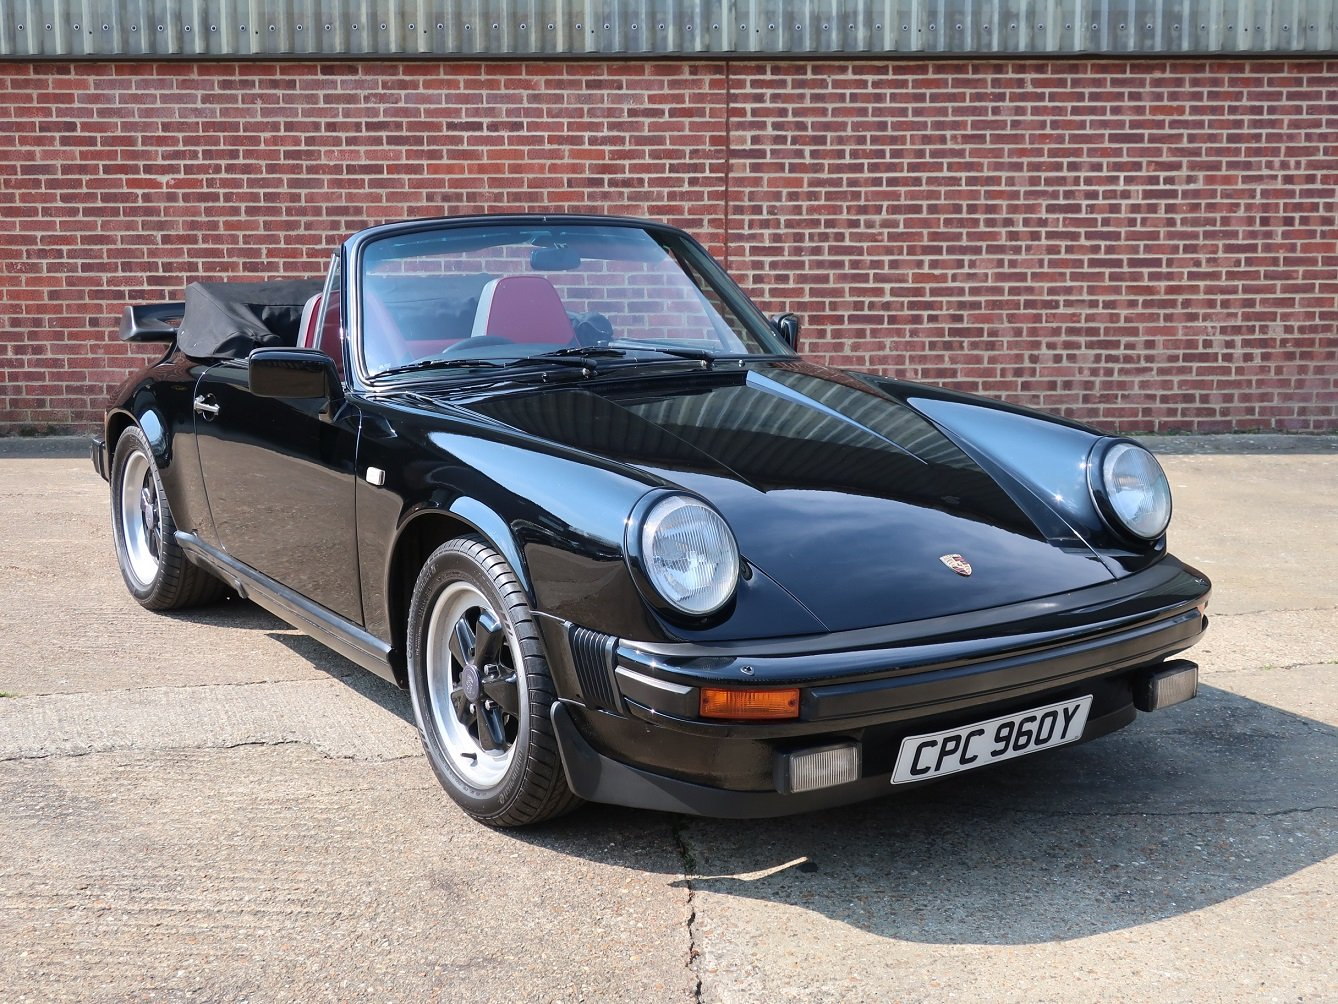 1983 Porsche 911 3.0 SC Cabriolet For Sale (picture 1 of 6)